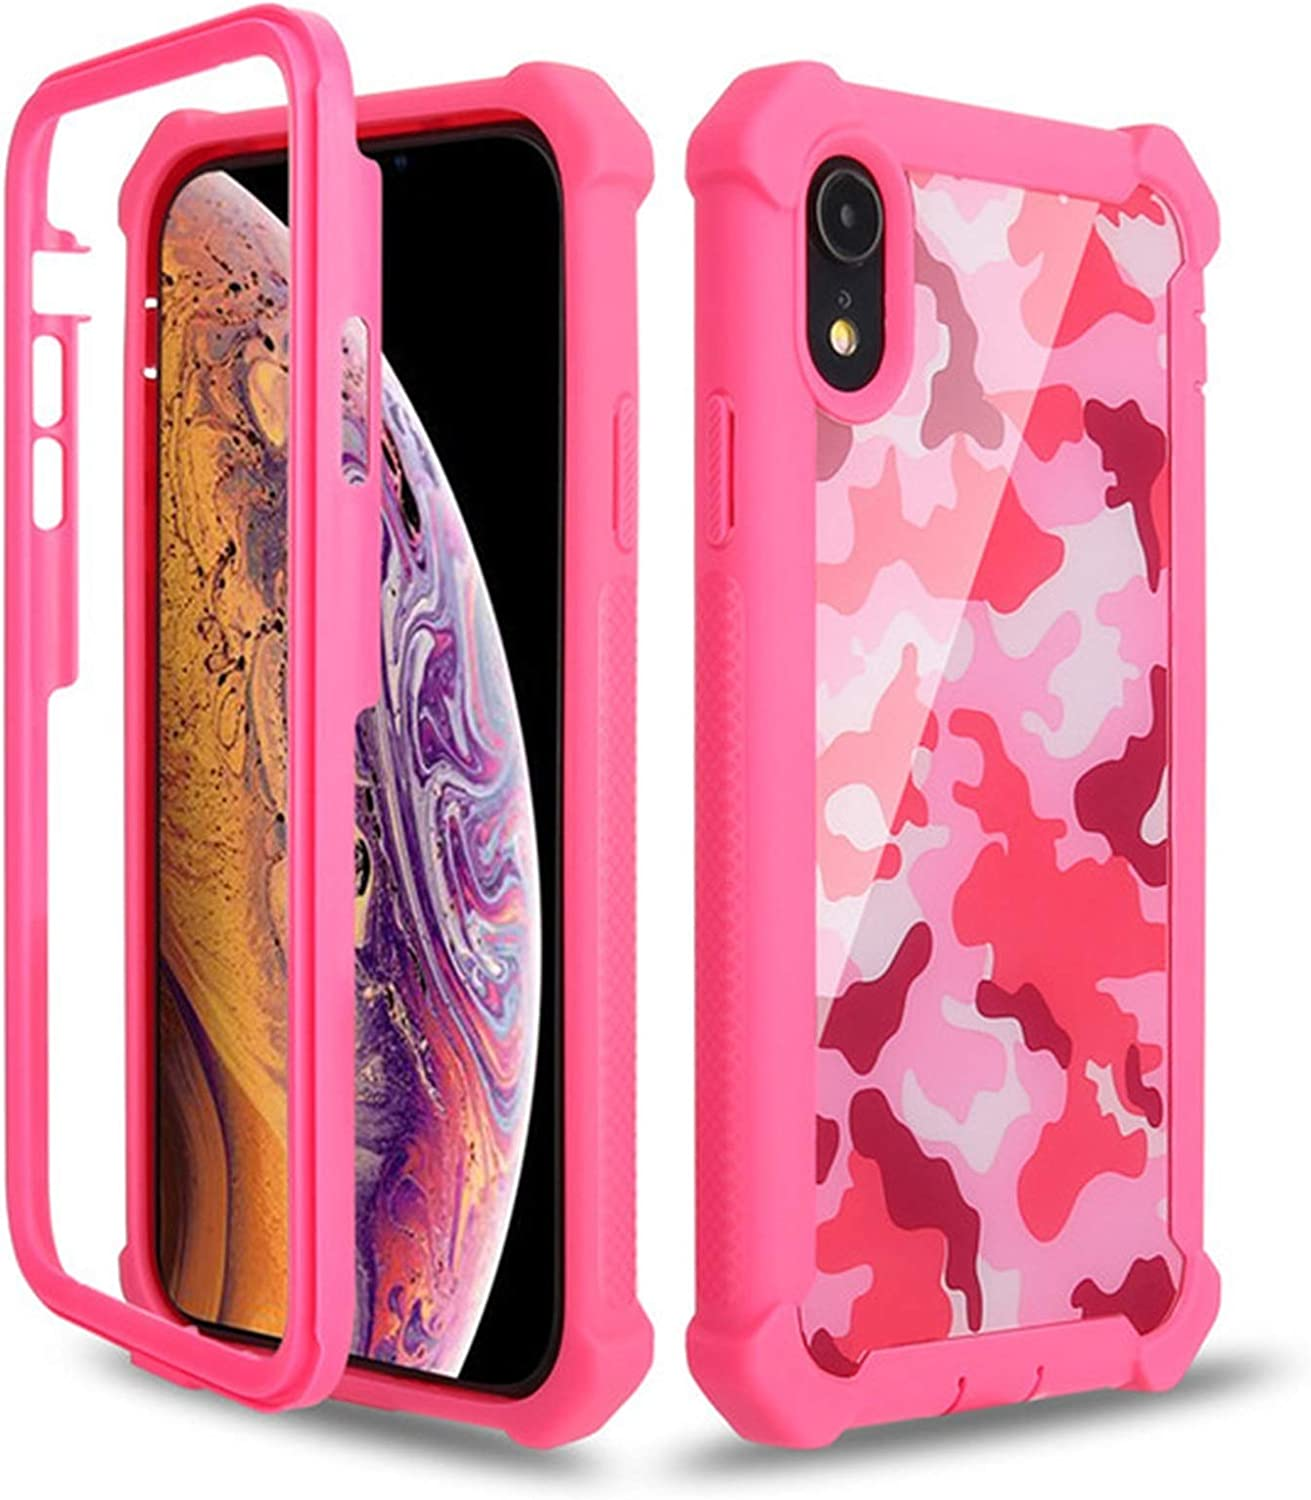 WZJFZPL Cases Phone Max 68% OFF Cover Protection TPU Case Cheap super special price Sams Fit for